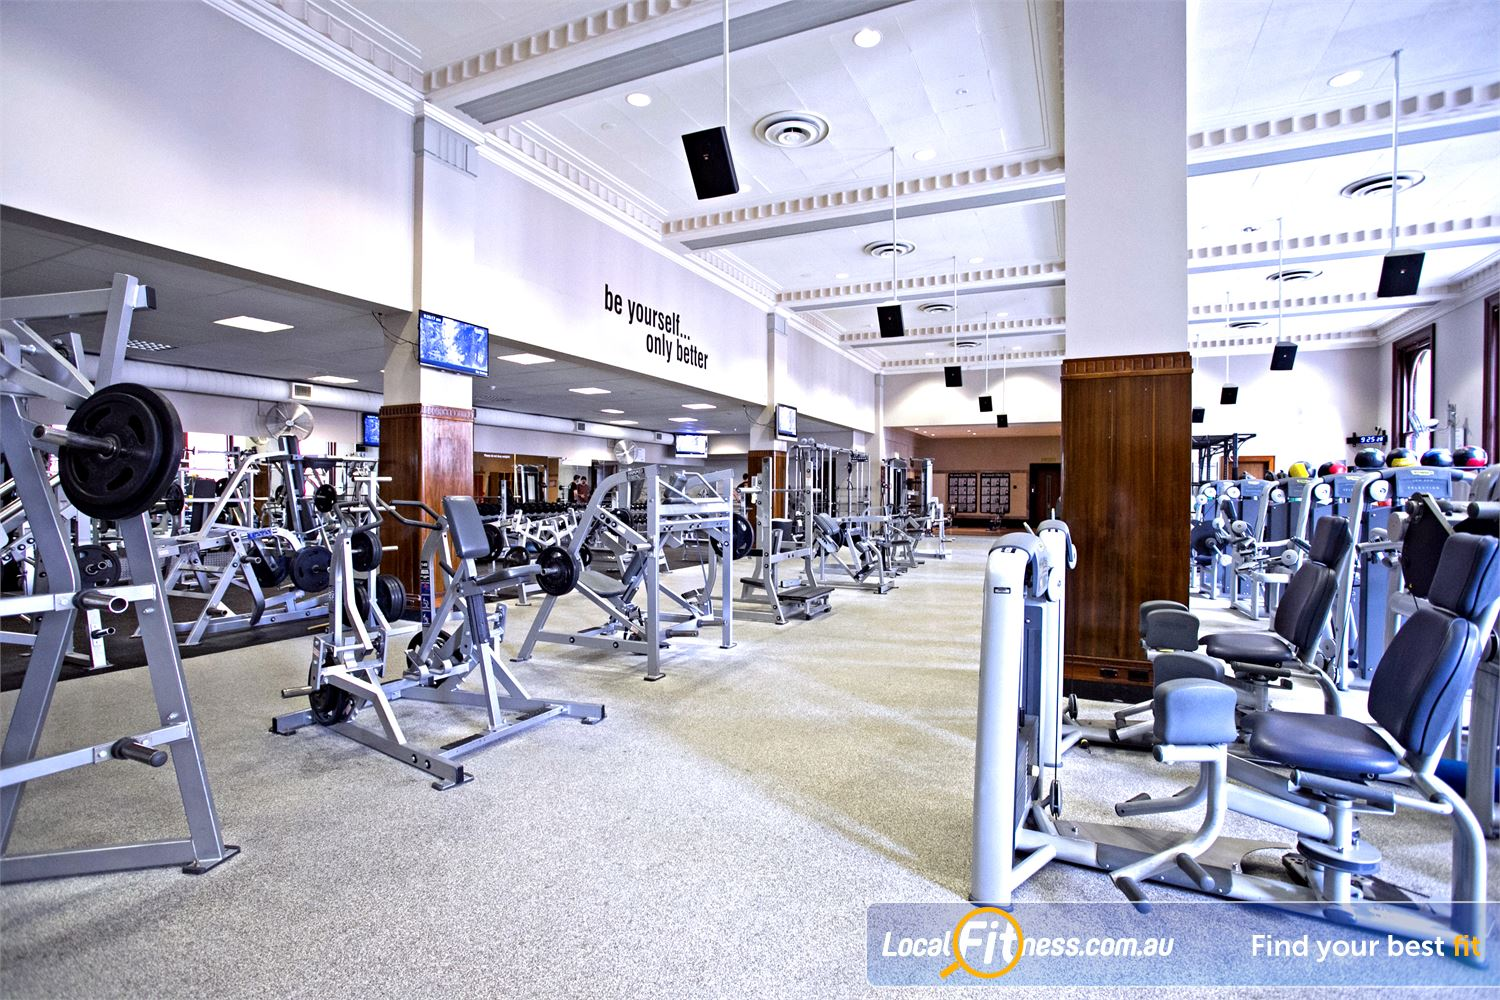 Goodlife Health Clubs Adelaide City Adelaide Enjoy training in our naturally lit Adelaide gym.